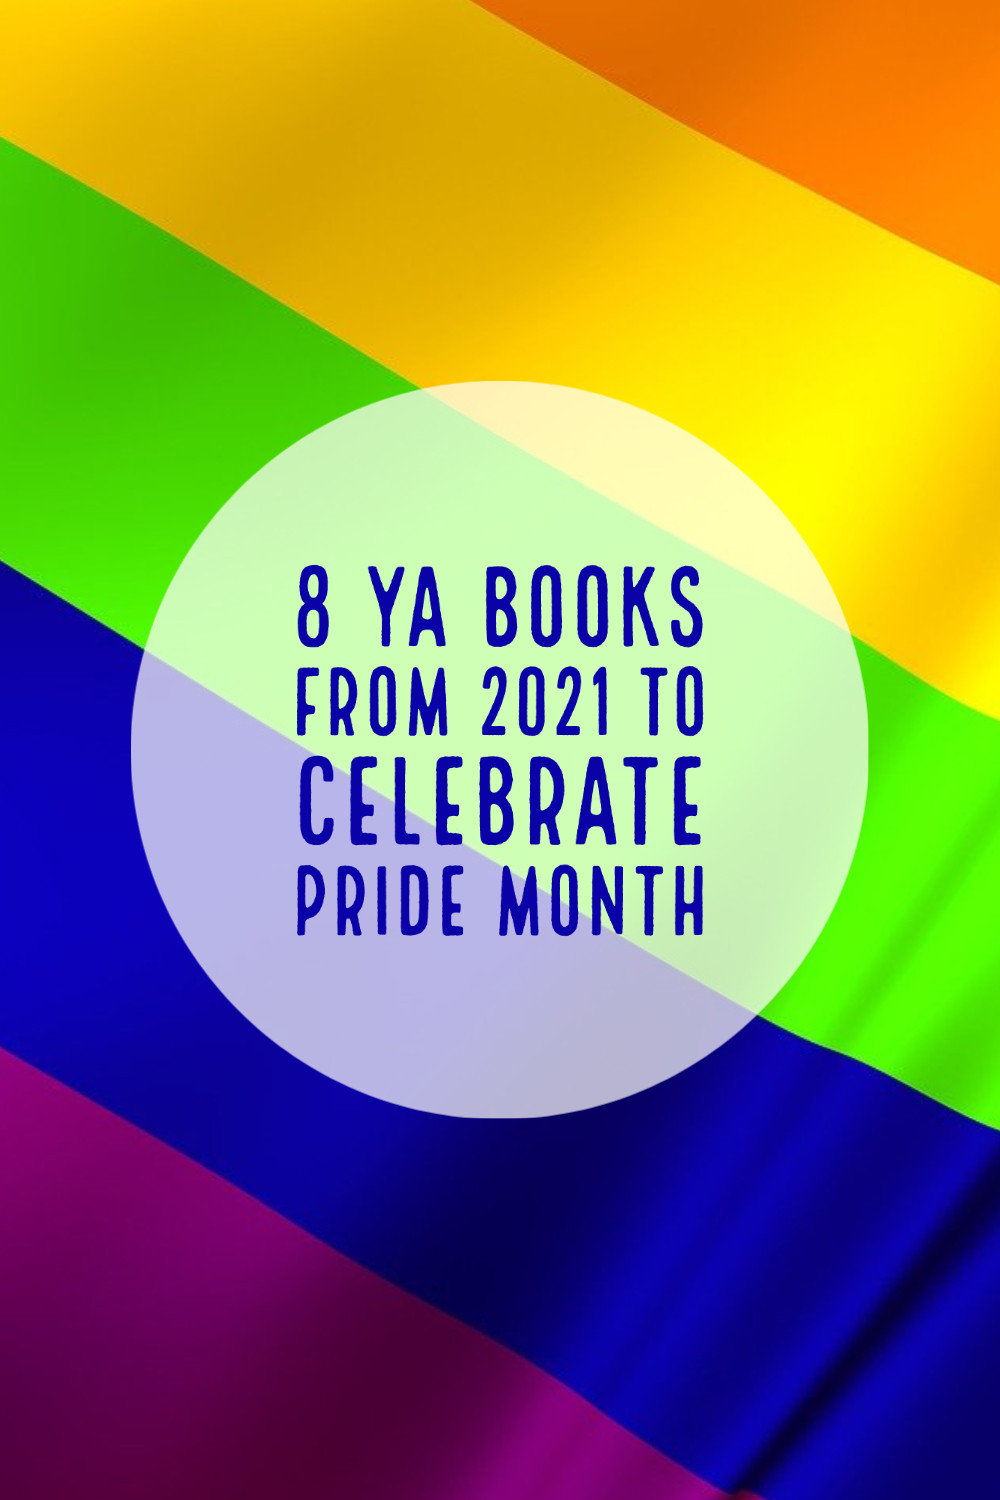 """Image of a rainbow Pride flag with text """"8 YA Books from 2021 to Celebrate Pride Month"""""""